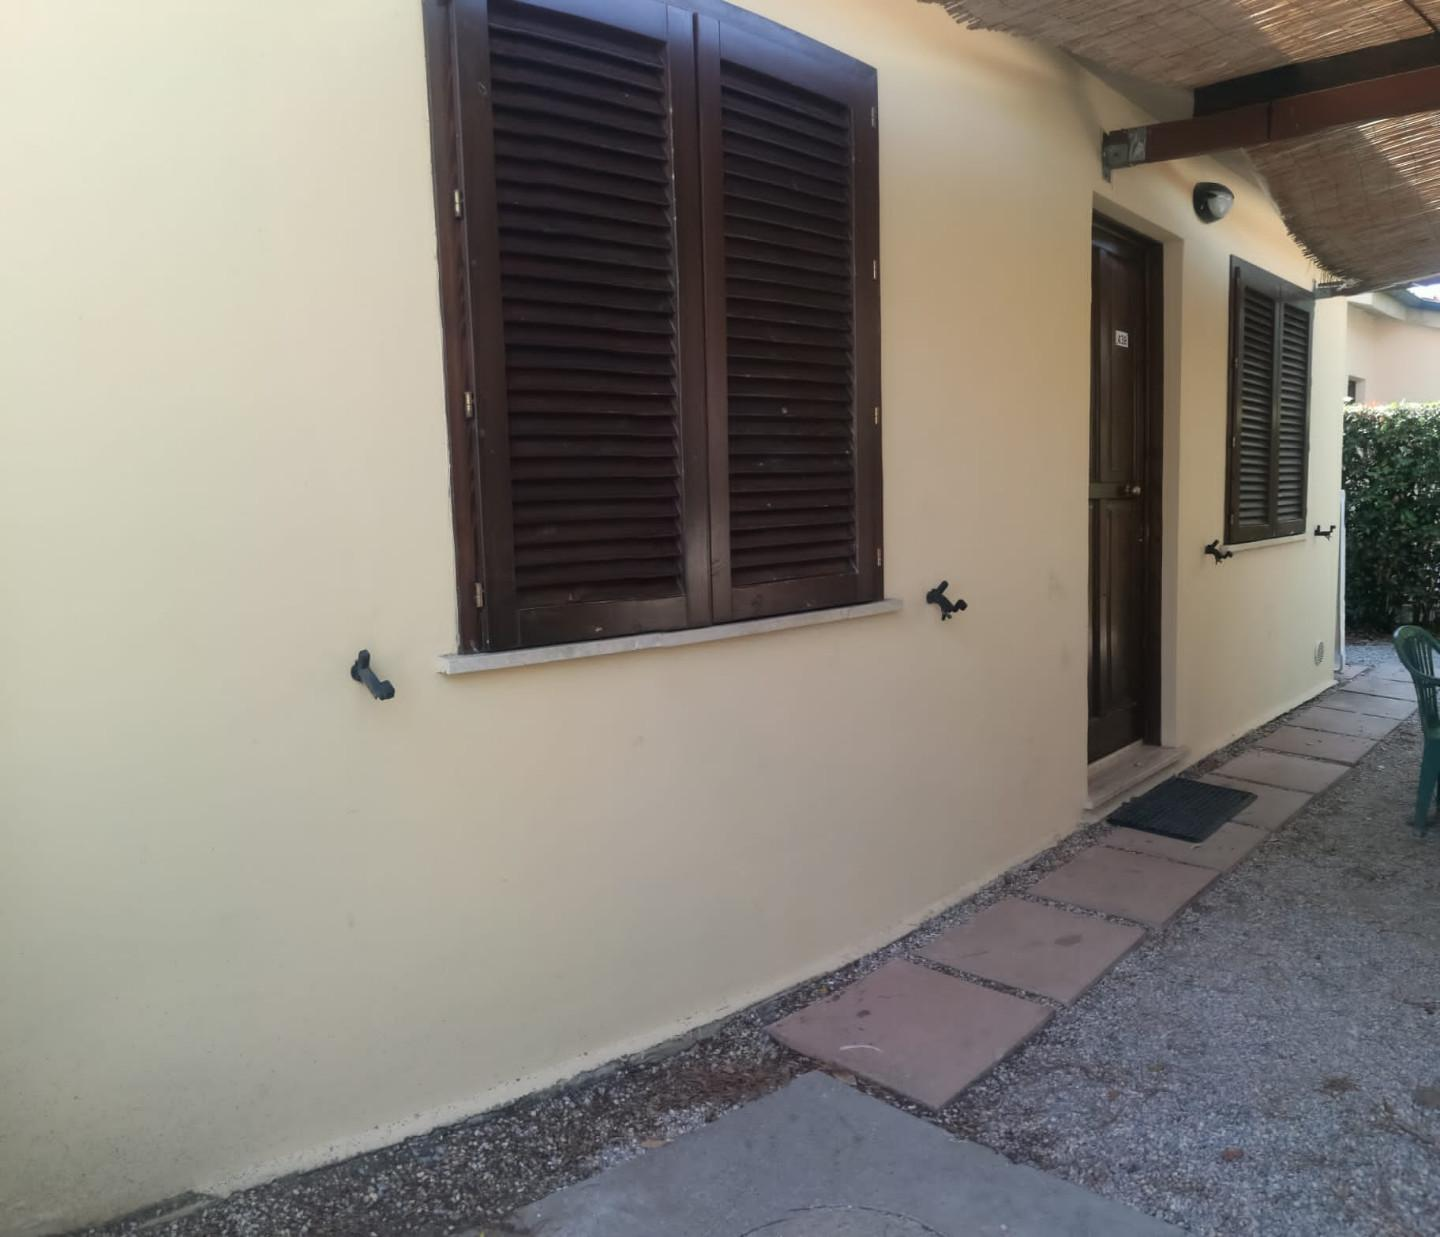 Bungalows for sale in Piombino (LI)